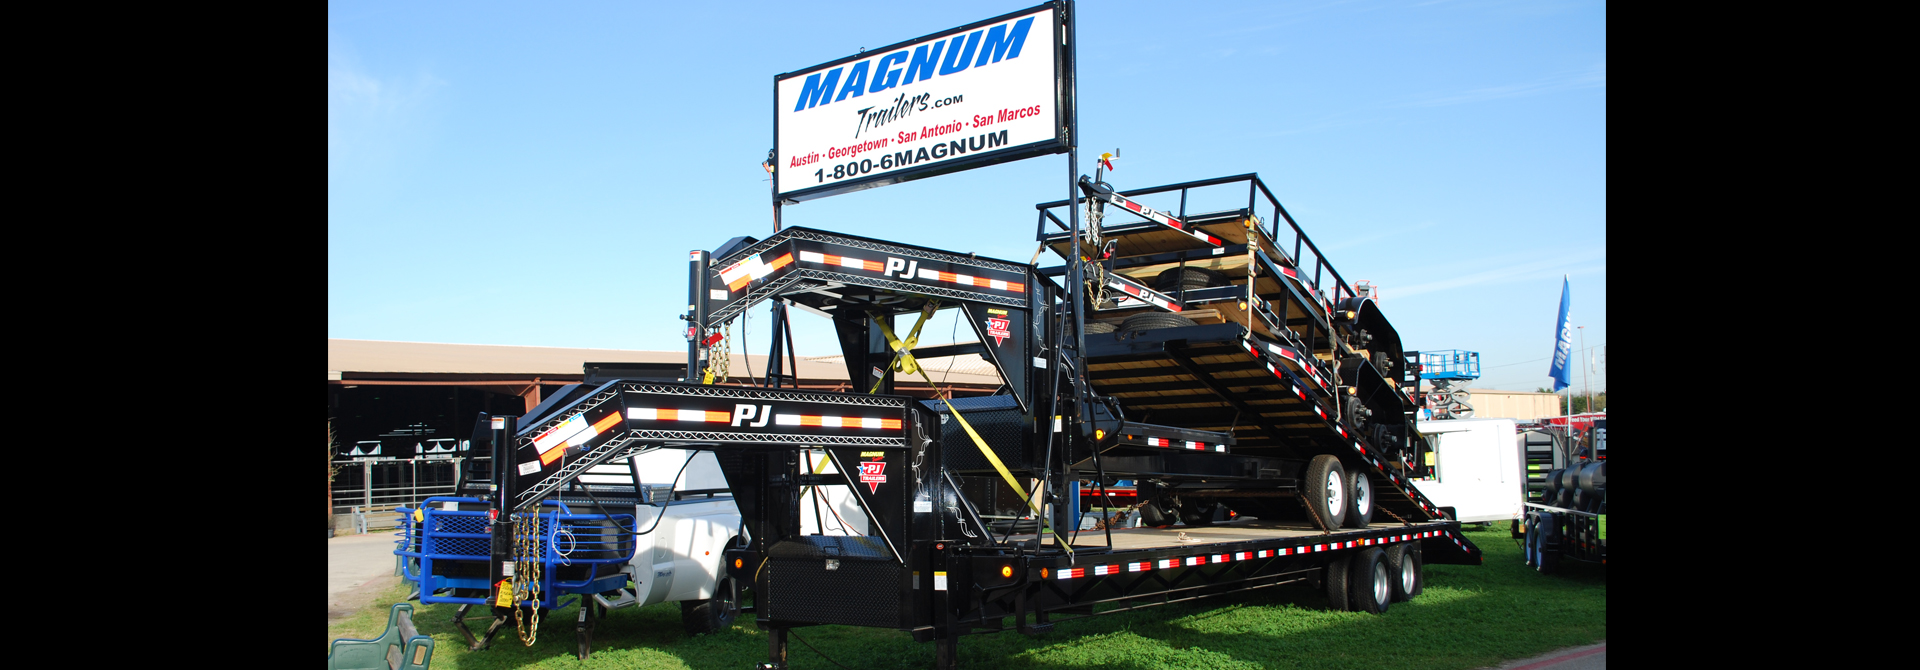 Home Magnum Trailers Performance Pj Wells Cargo Top Hat Ww Stock Trailer Wiring Harness For Lights We Build Custom Boat To Fit Your In Painted Steel Galvanized Or Aluminum